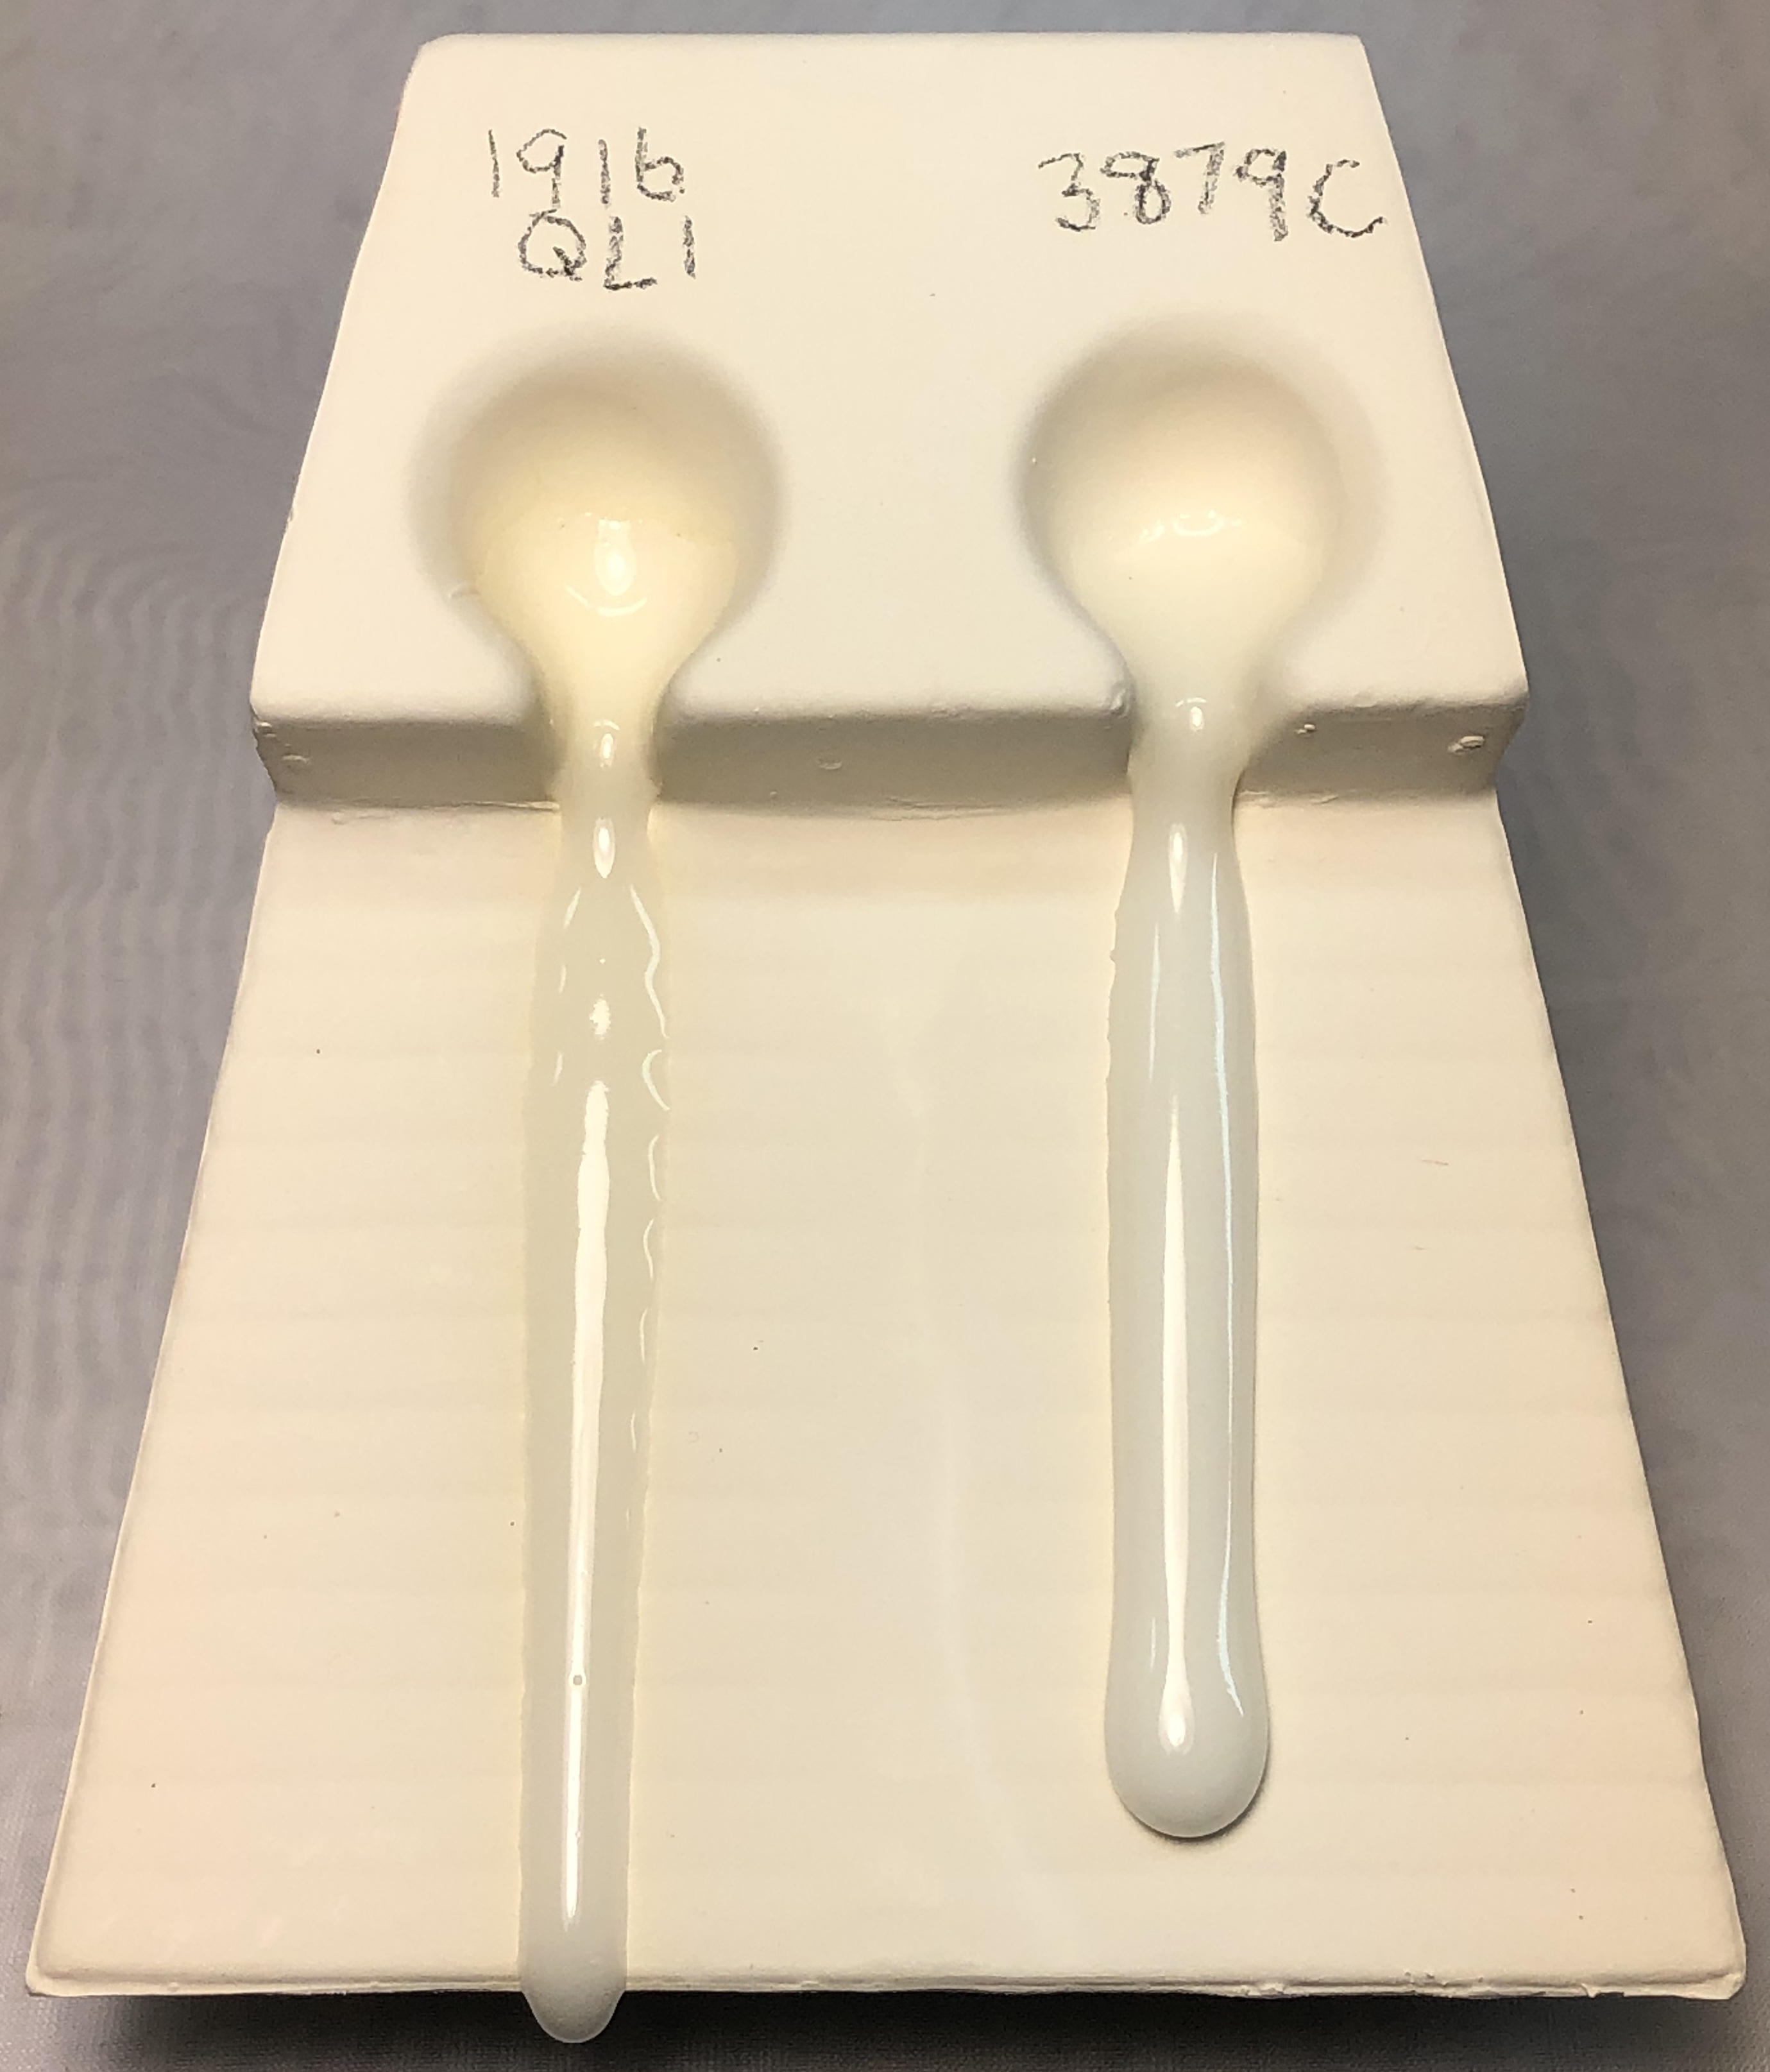 Melt fluidity comparison of two clear glazes